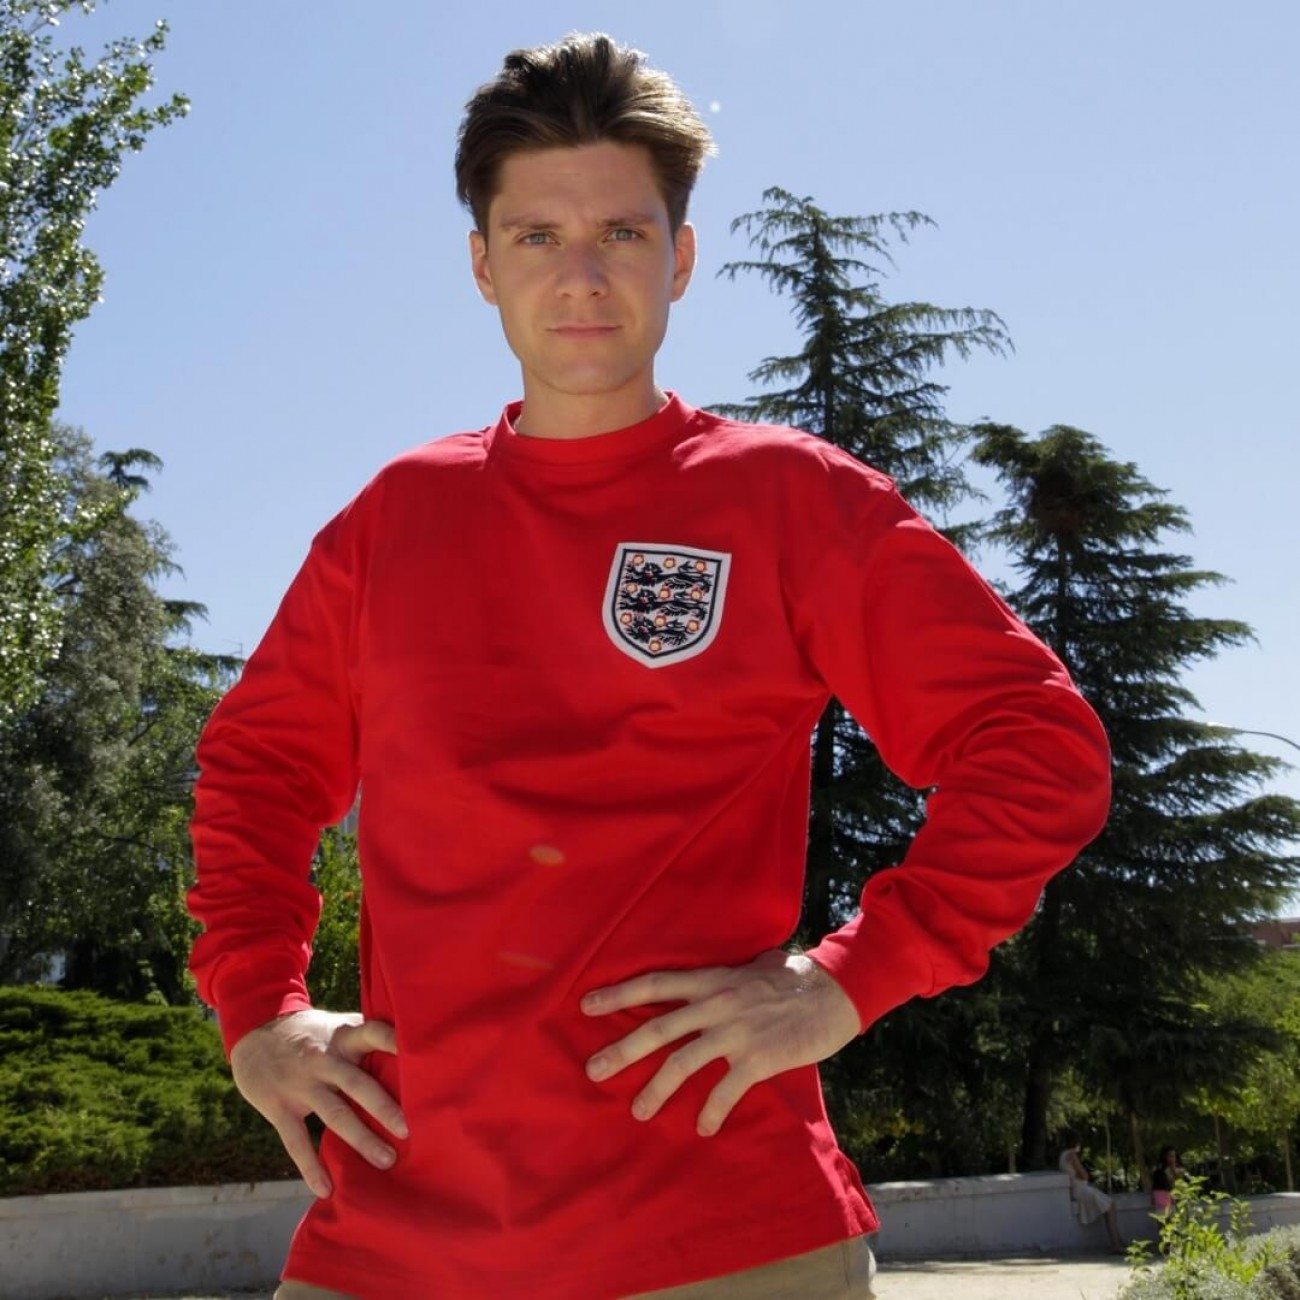 England's retro jerseys: Original gift for men football supporters